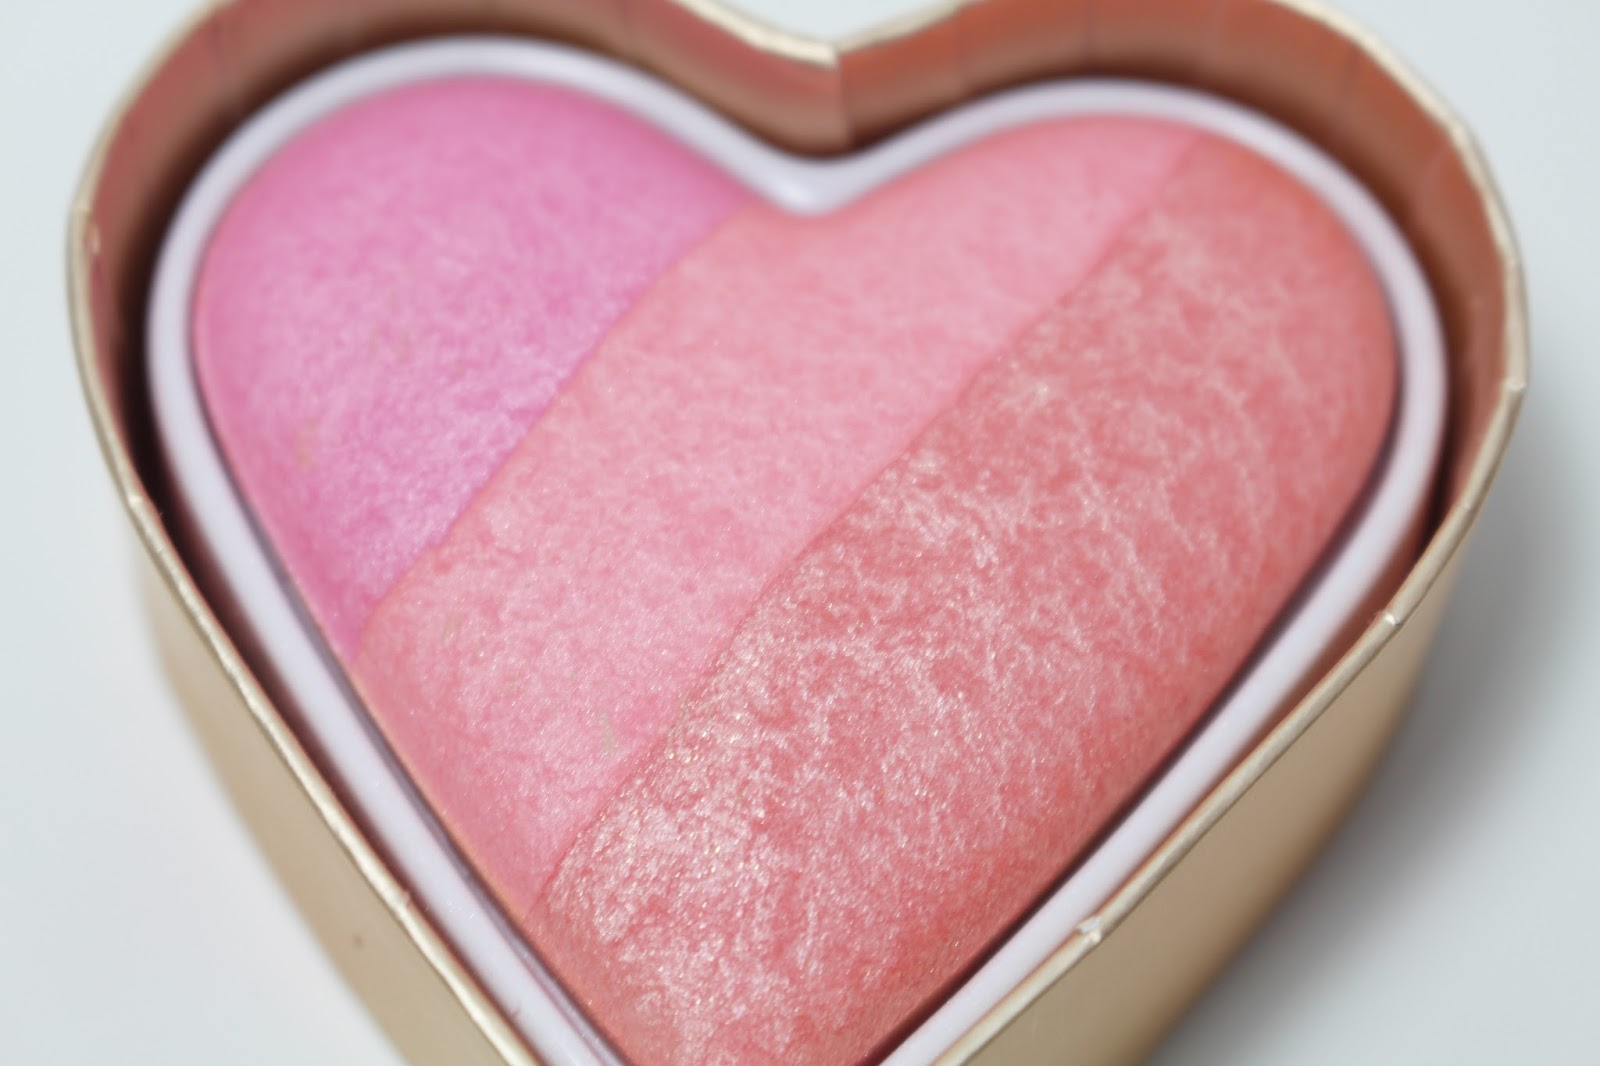 Too Faced Sweetheart Blush in Candy Glow Review